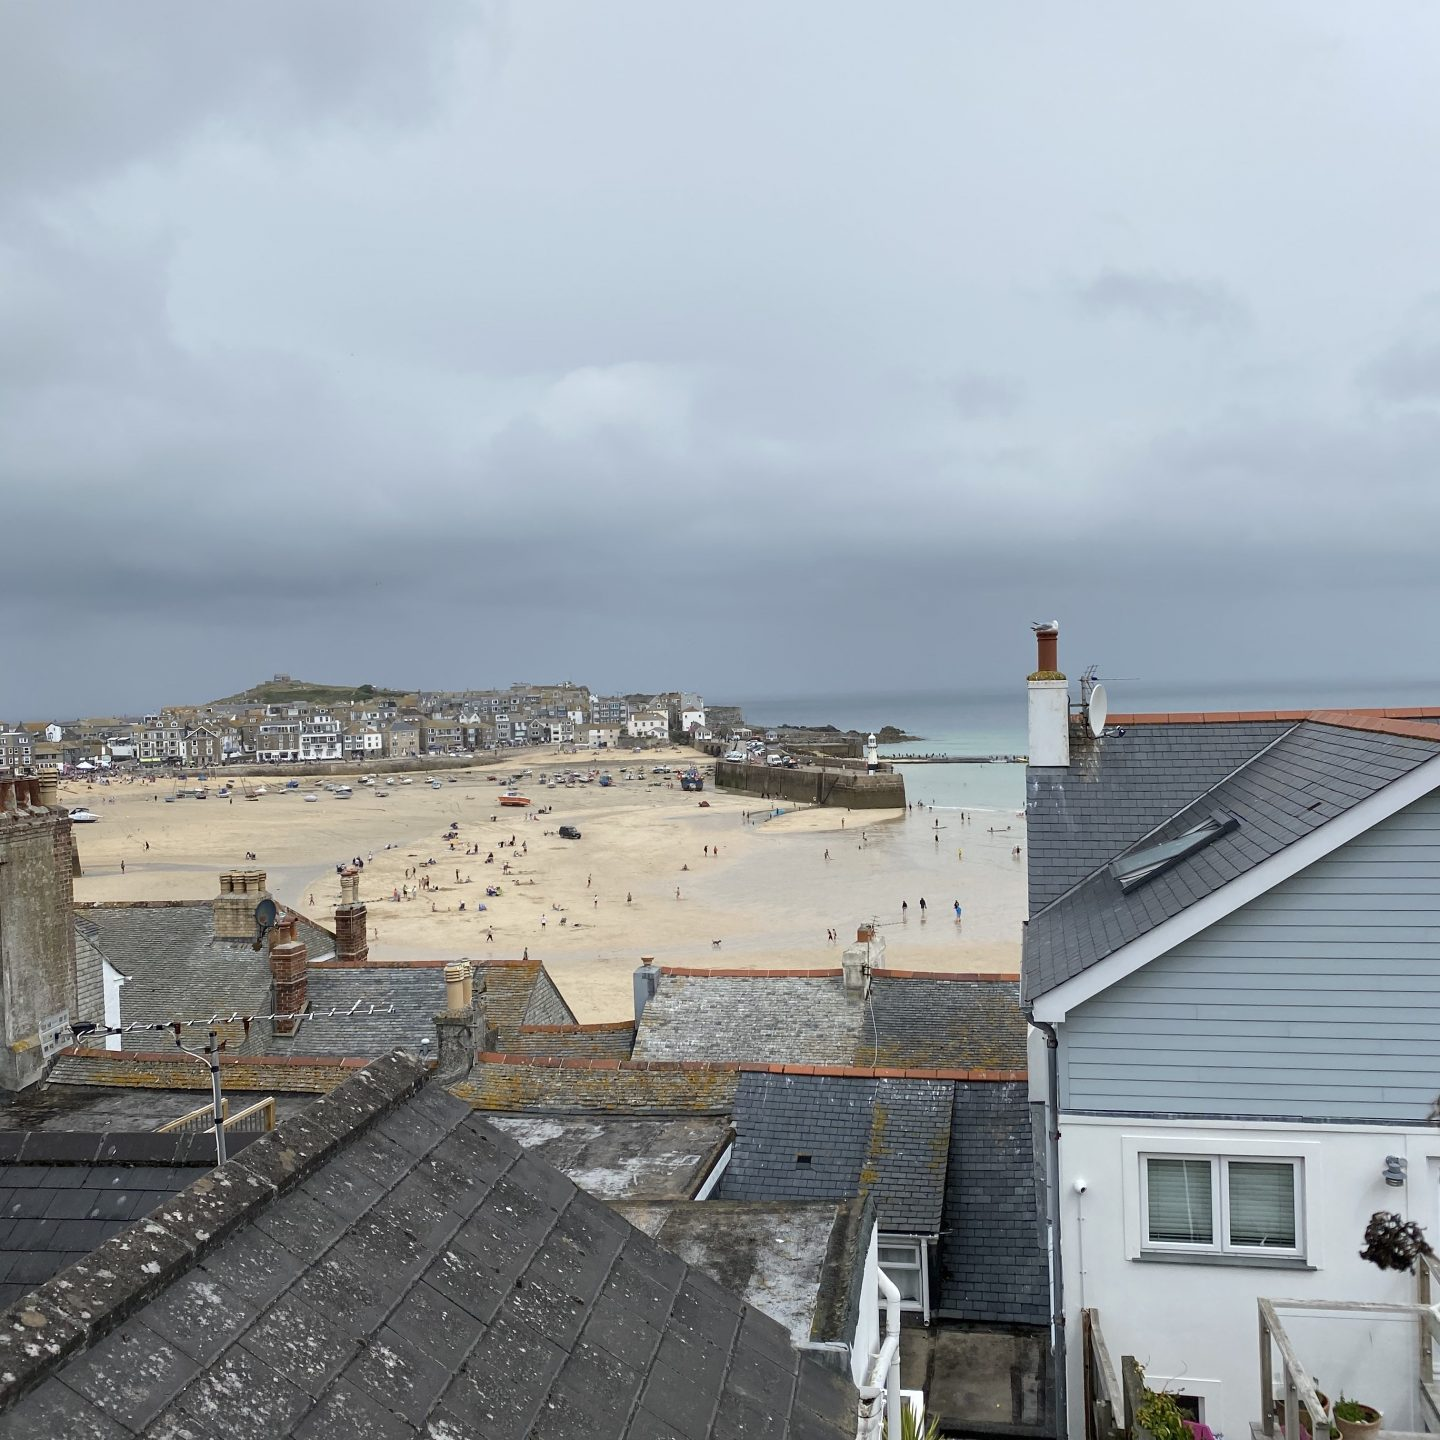 A view of St ives and the harbour